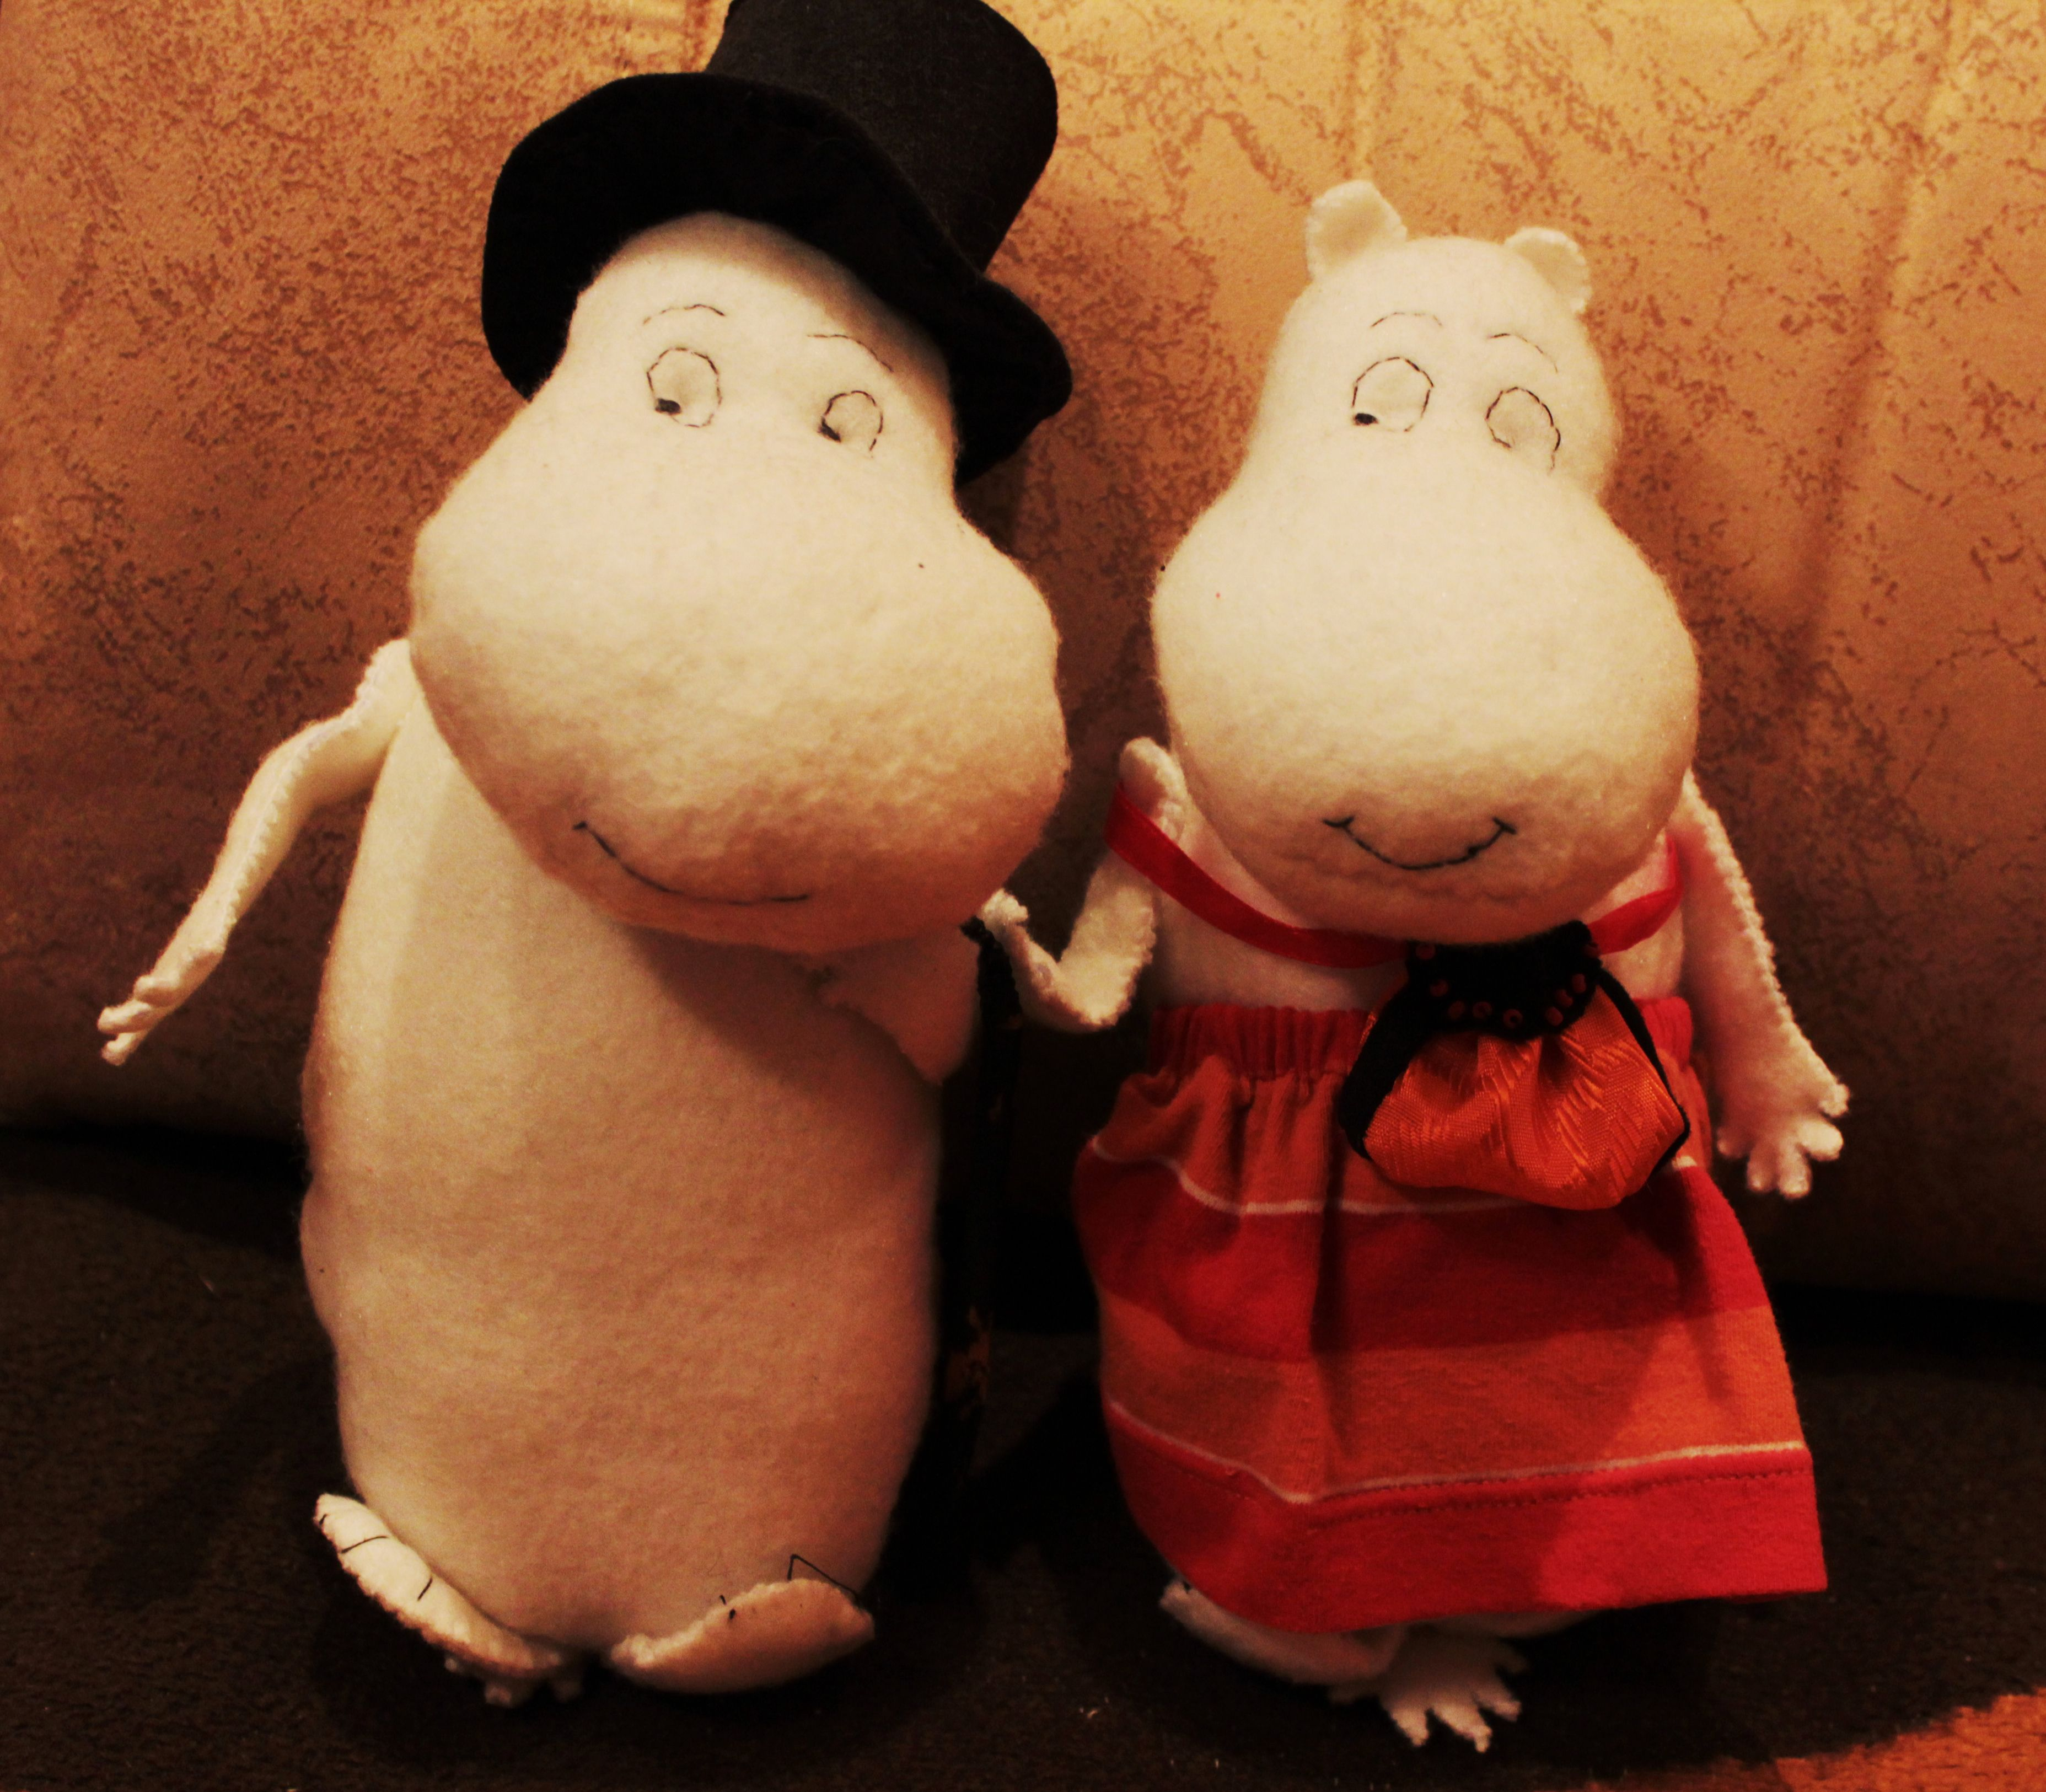 tovejansson mom toys dad moomin